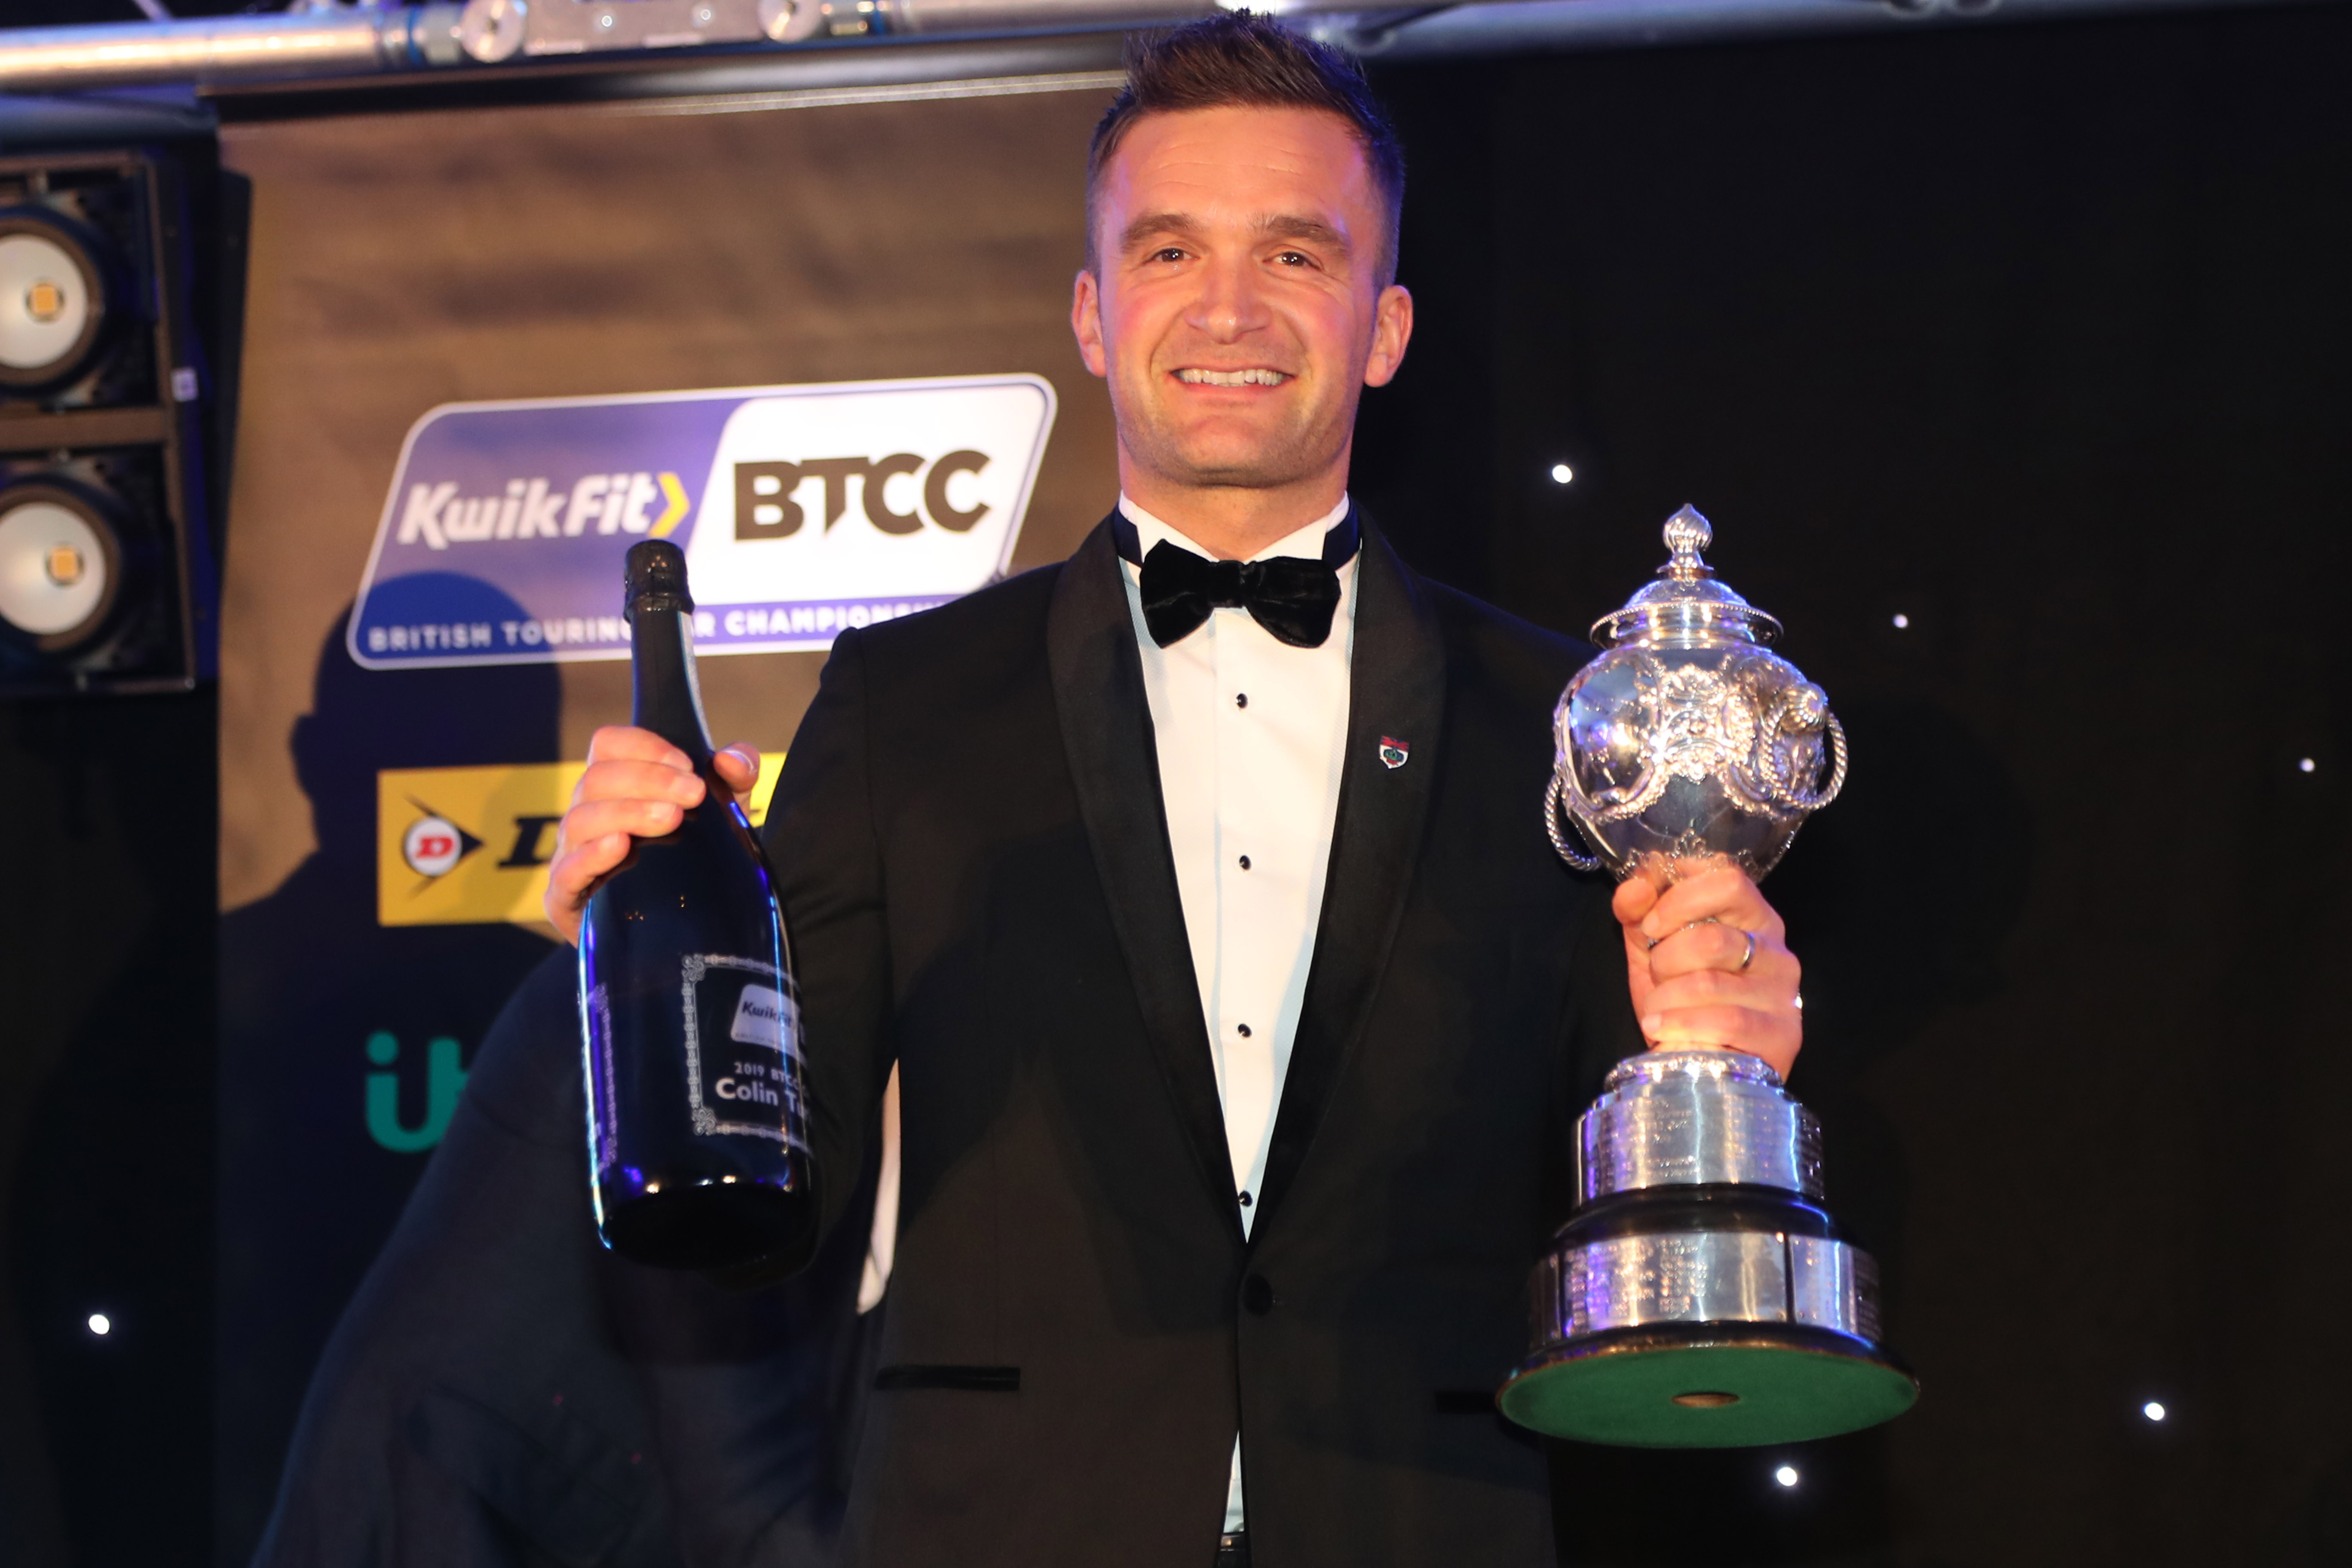 TURKINGTON VOTED DRIVER OF THE YEAR